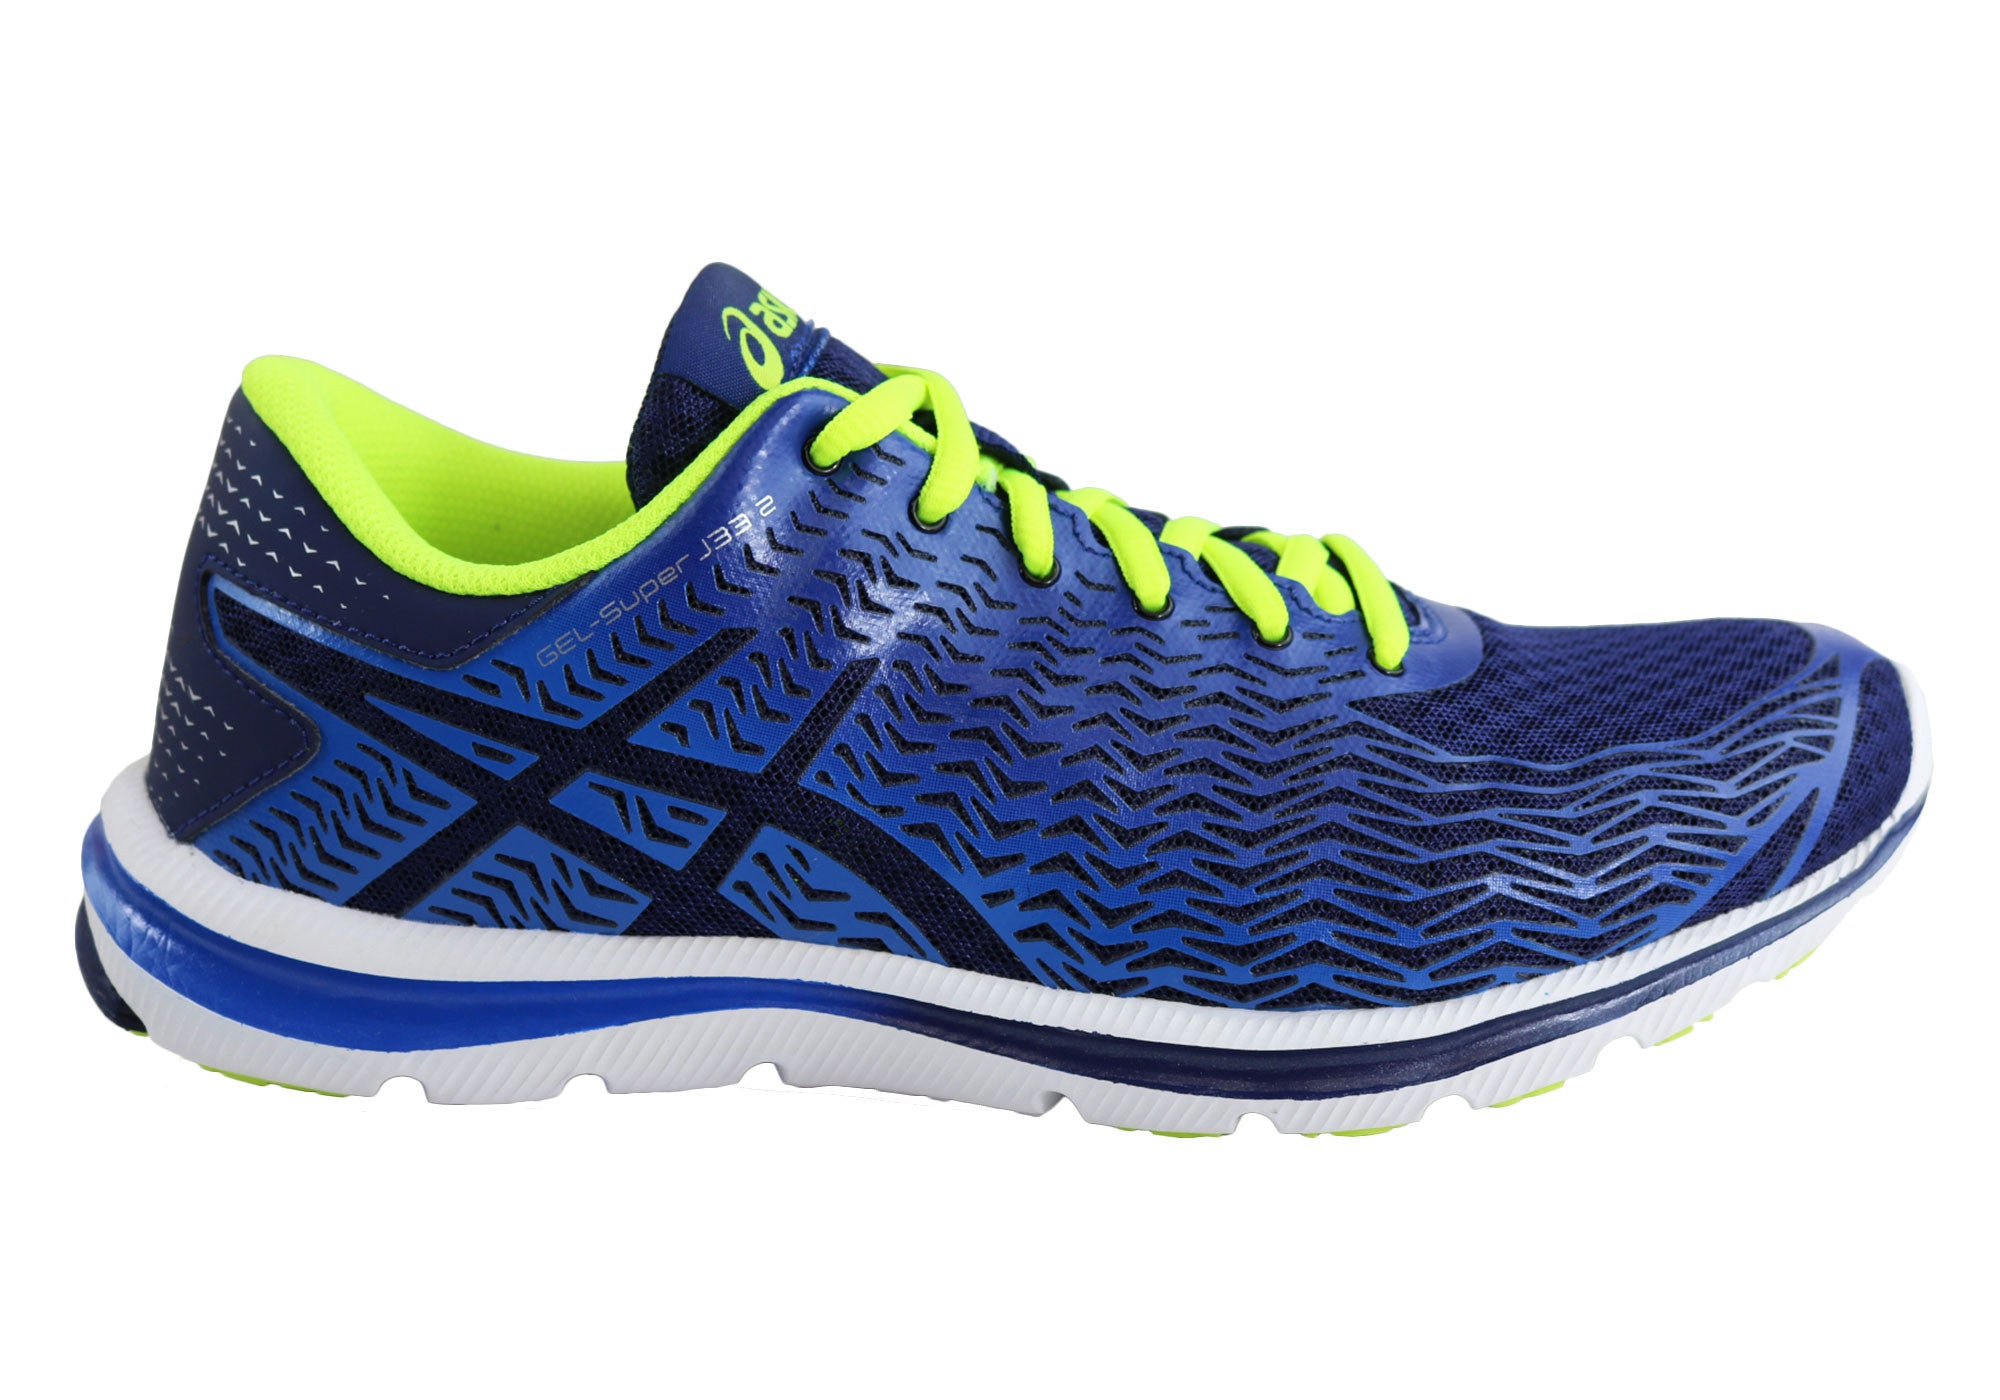 17 Best Running Shoes images | Running shoes, Shoes, Running